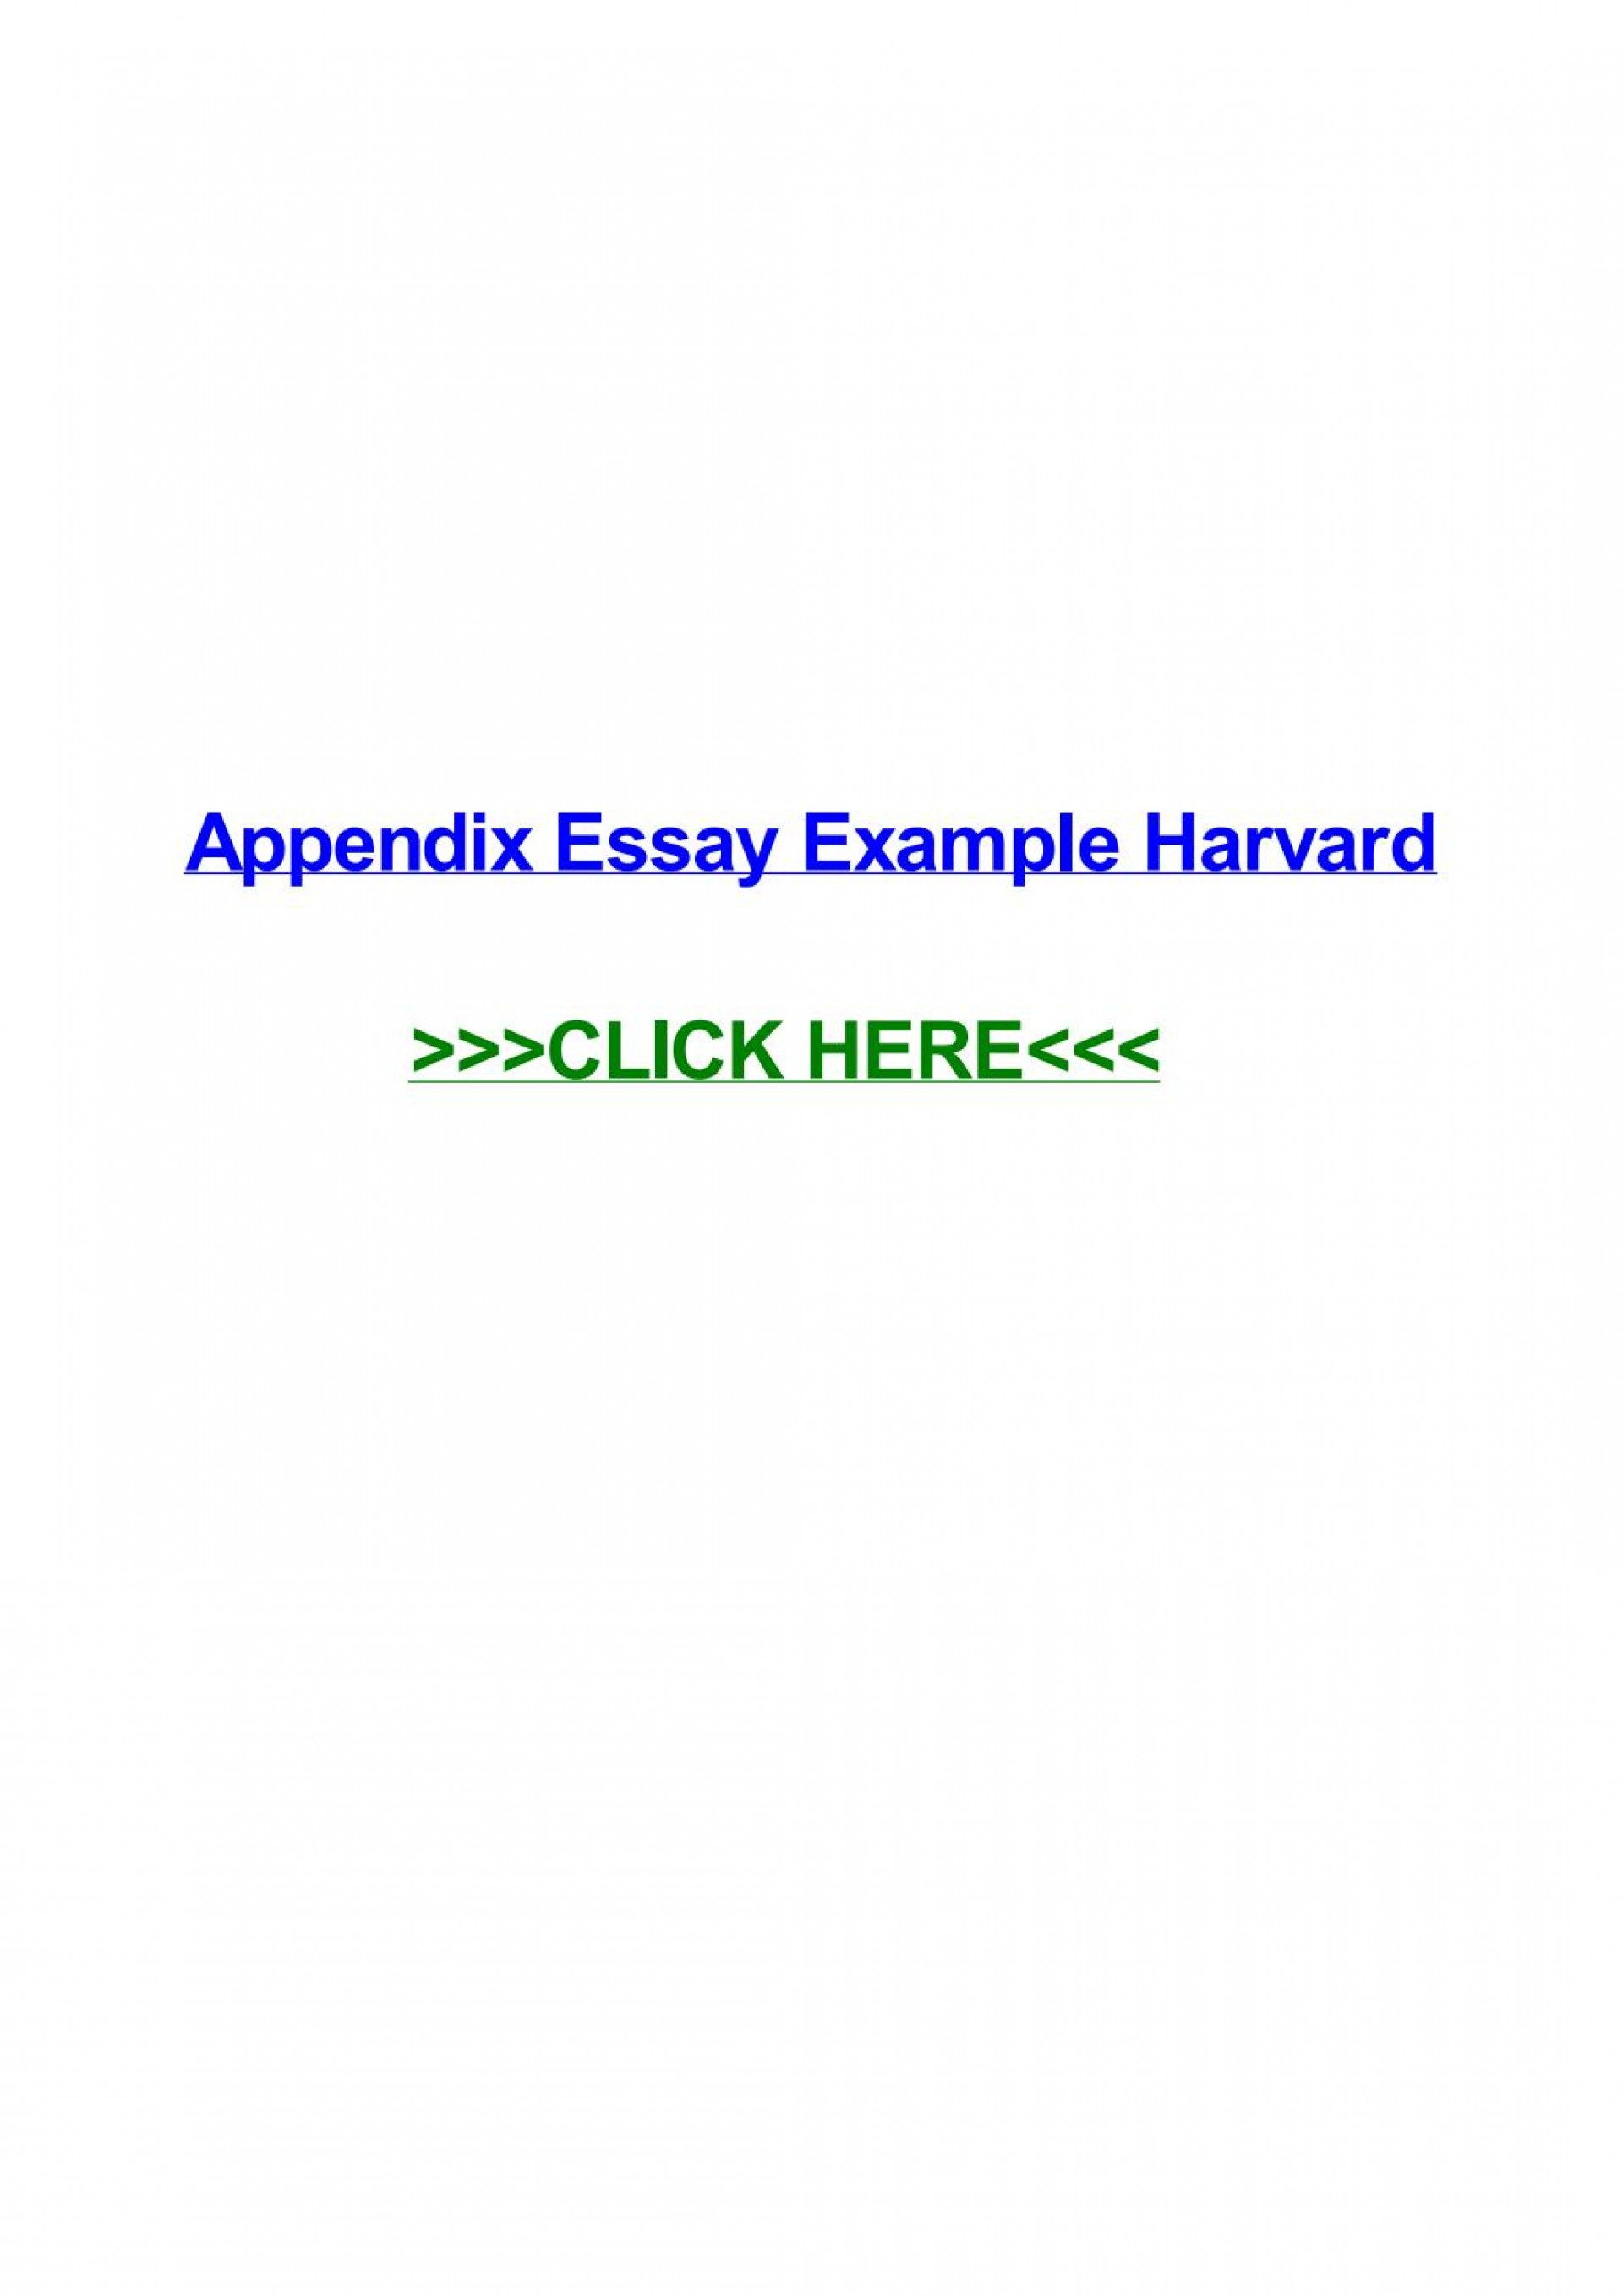 009 Essay Example Appendix Page 1 Remarkable Mla English 1920